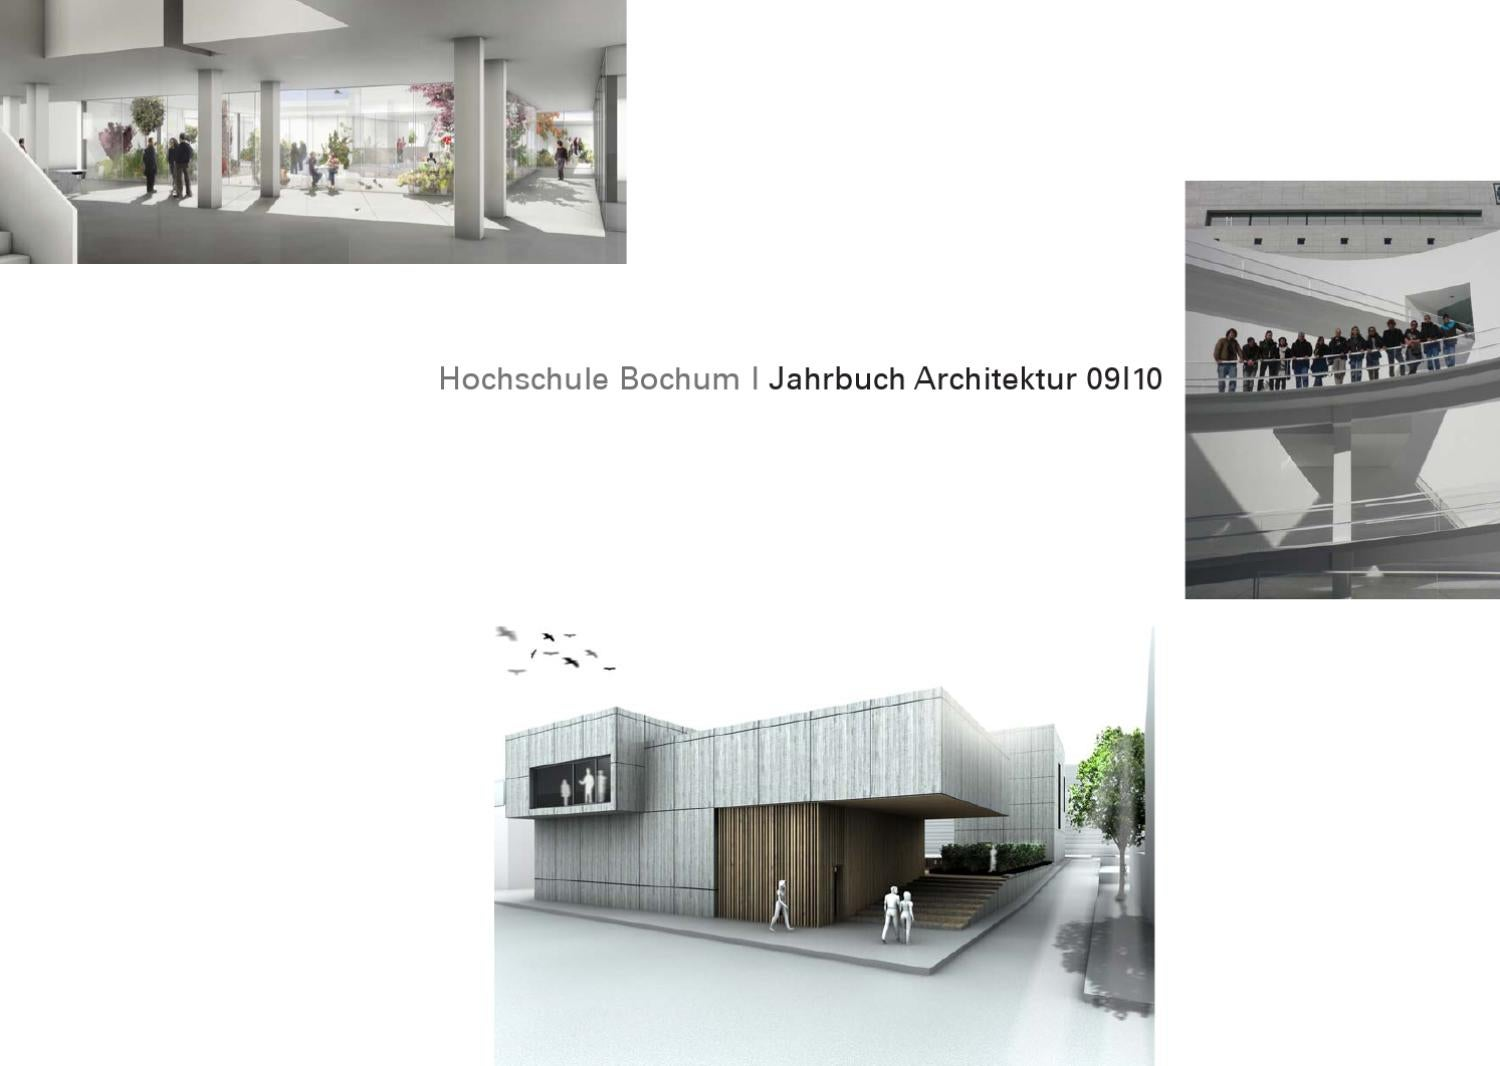 Jahrbuch Architektur HS Bochum 2010 By Harald Gatermann   Issuu